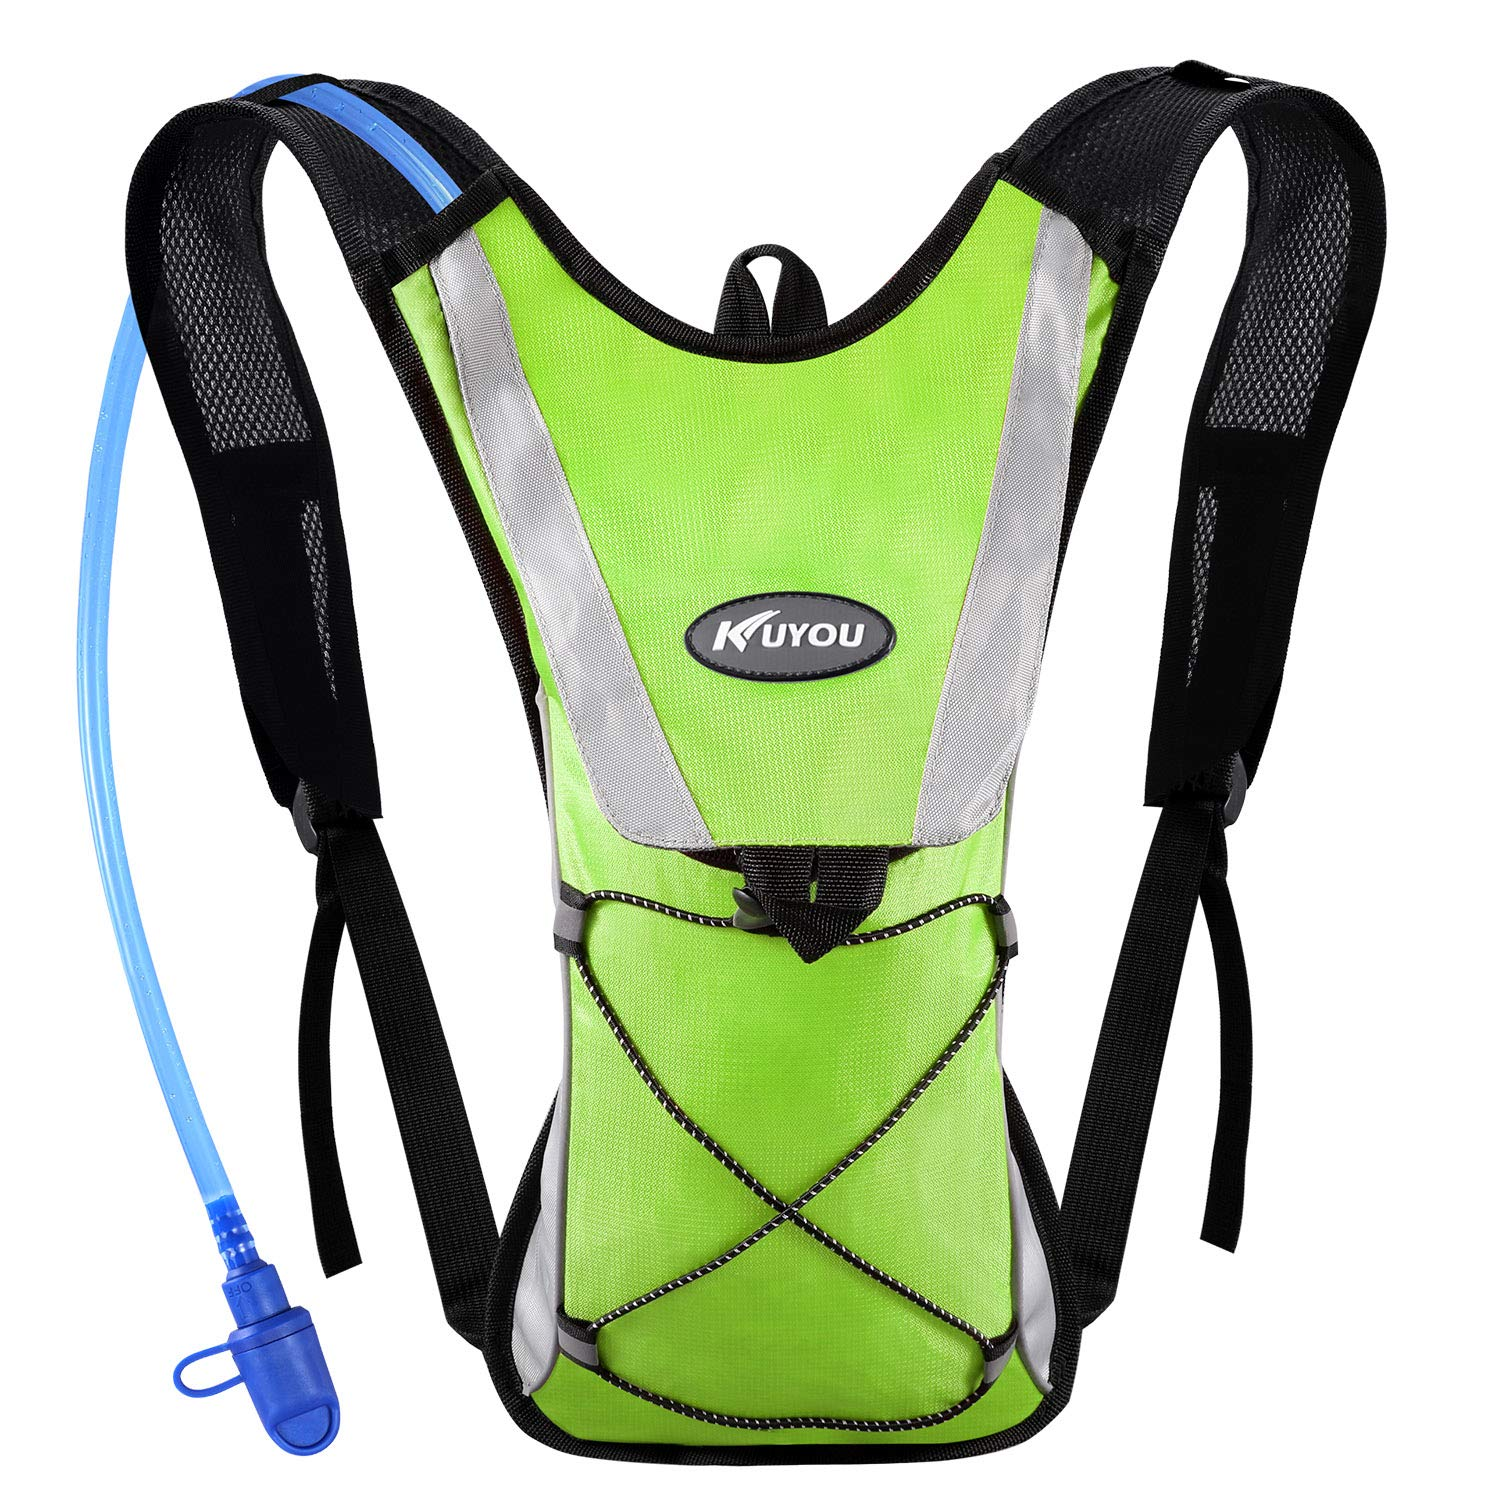 KUYOU Hydration Pack Water Rucksack Backpack Bladder Bag Cycling Bicycle Bike/Hiking Climbing Pouch + 2L Hydration Bladder,(Green+Water Pouch) by KUYOU